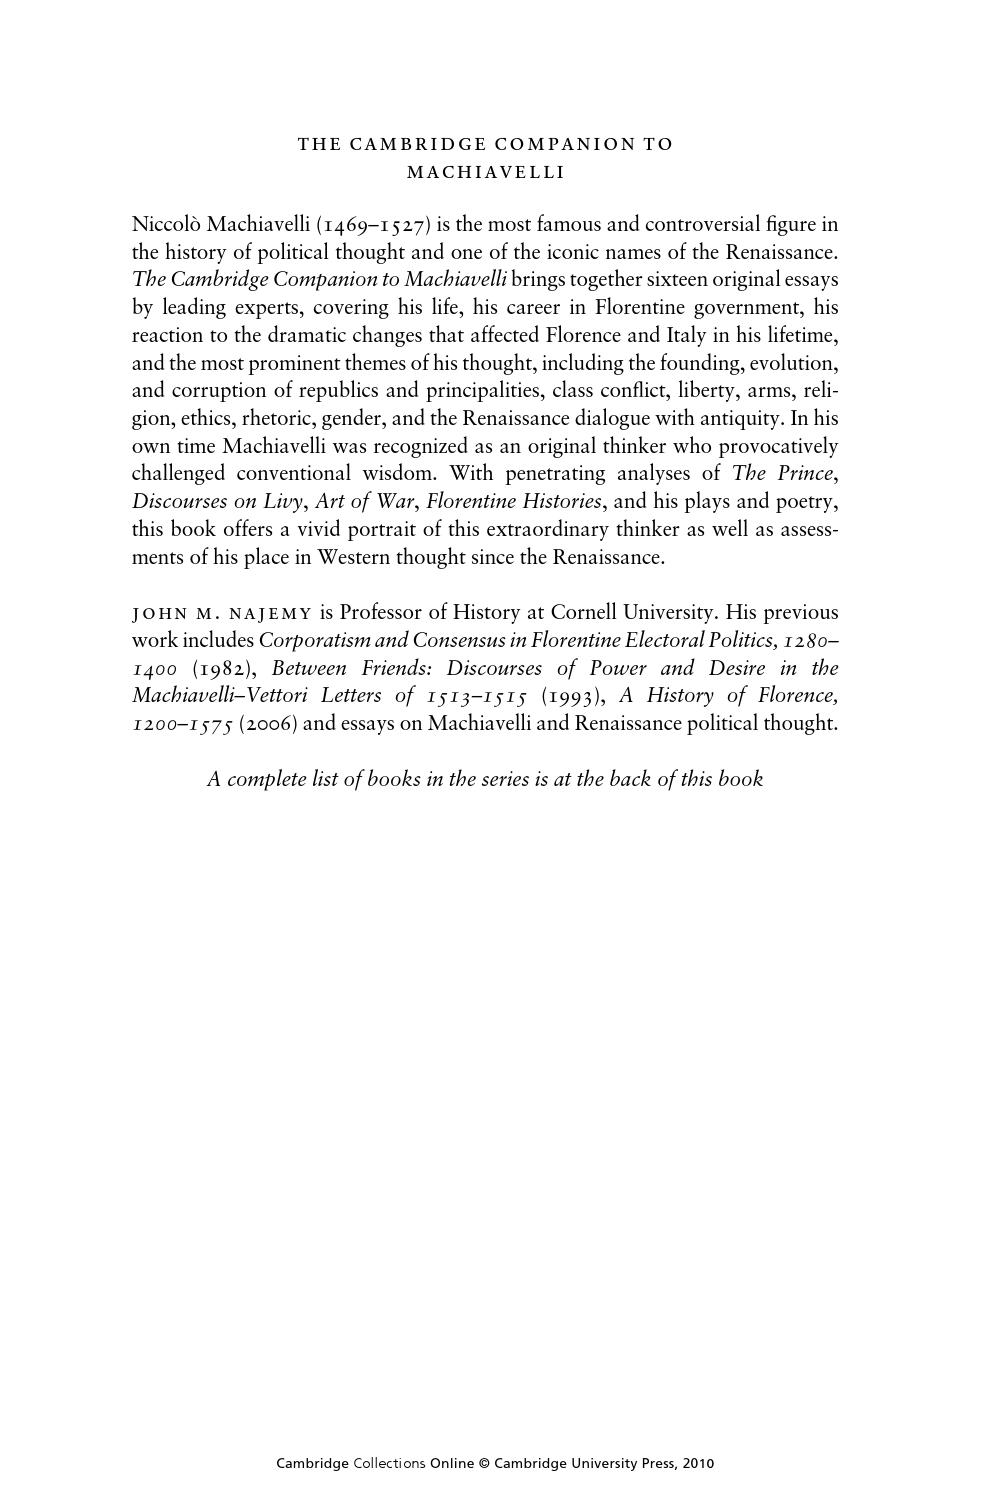 machiavelli essays debate essays sample essay for elementary  the cambridge companion to machiavelli by andrey gerasimov issuu